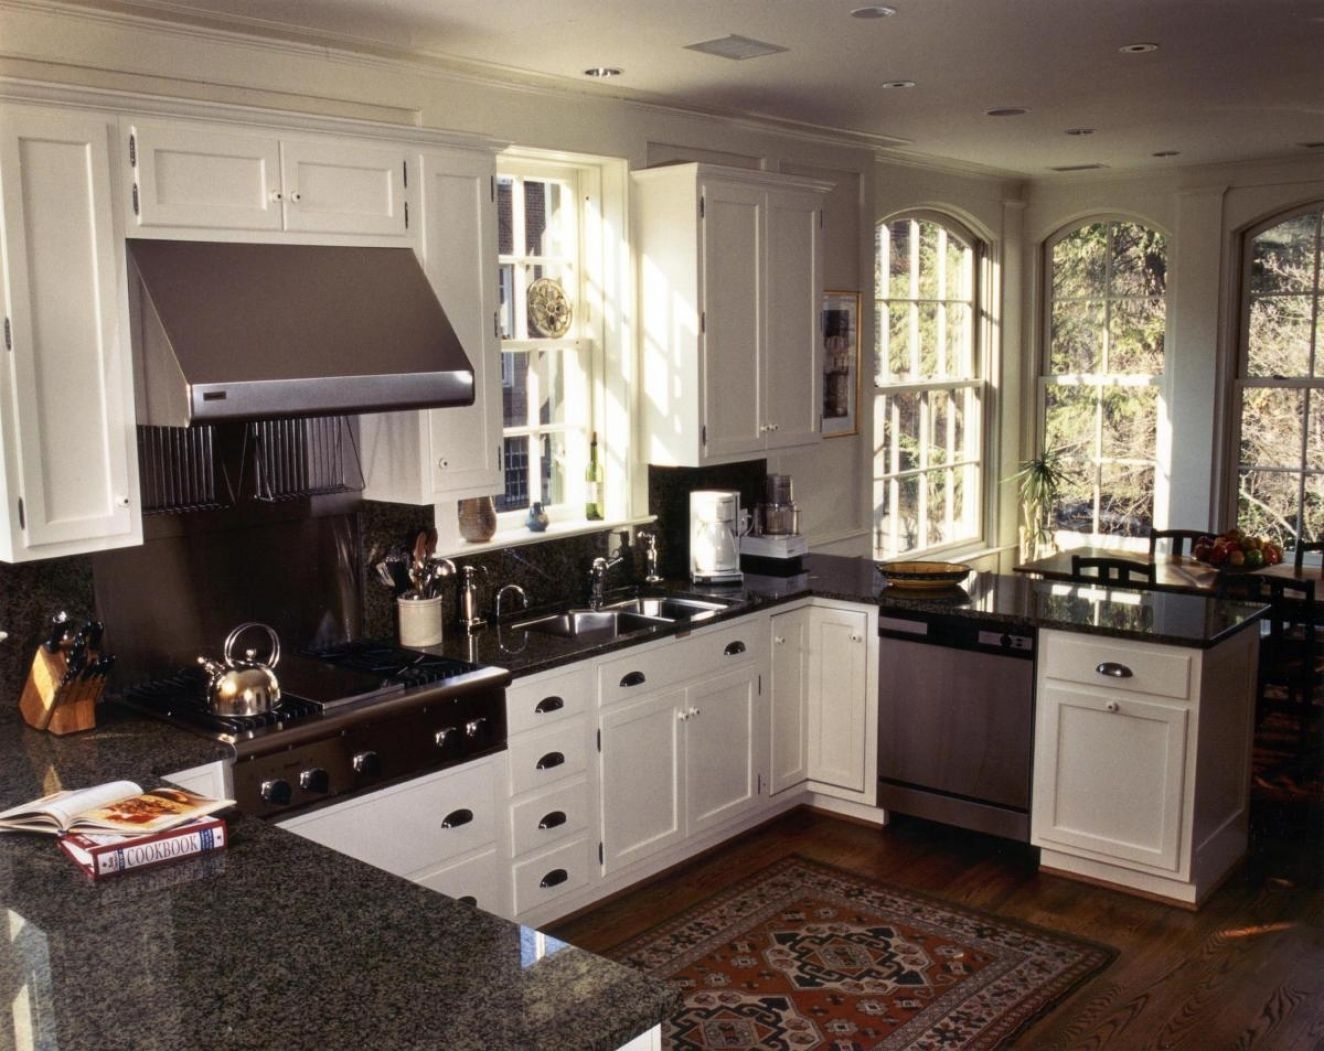 Best small kitchen design kitchen island design ideas check more